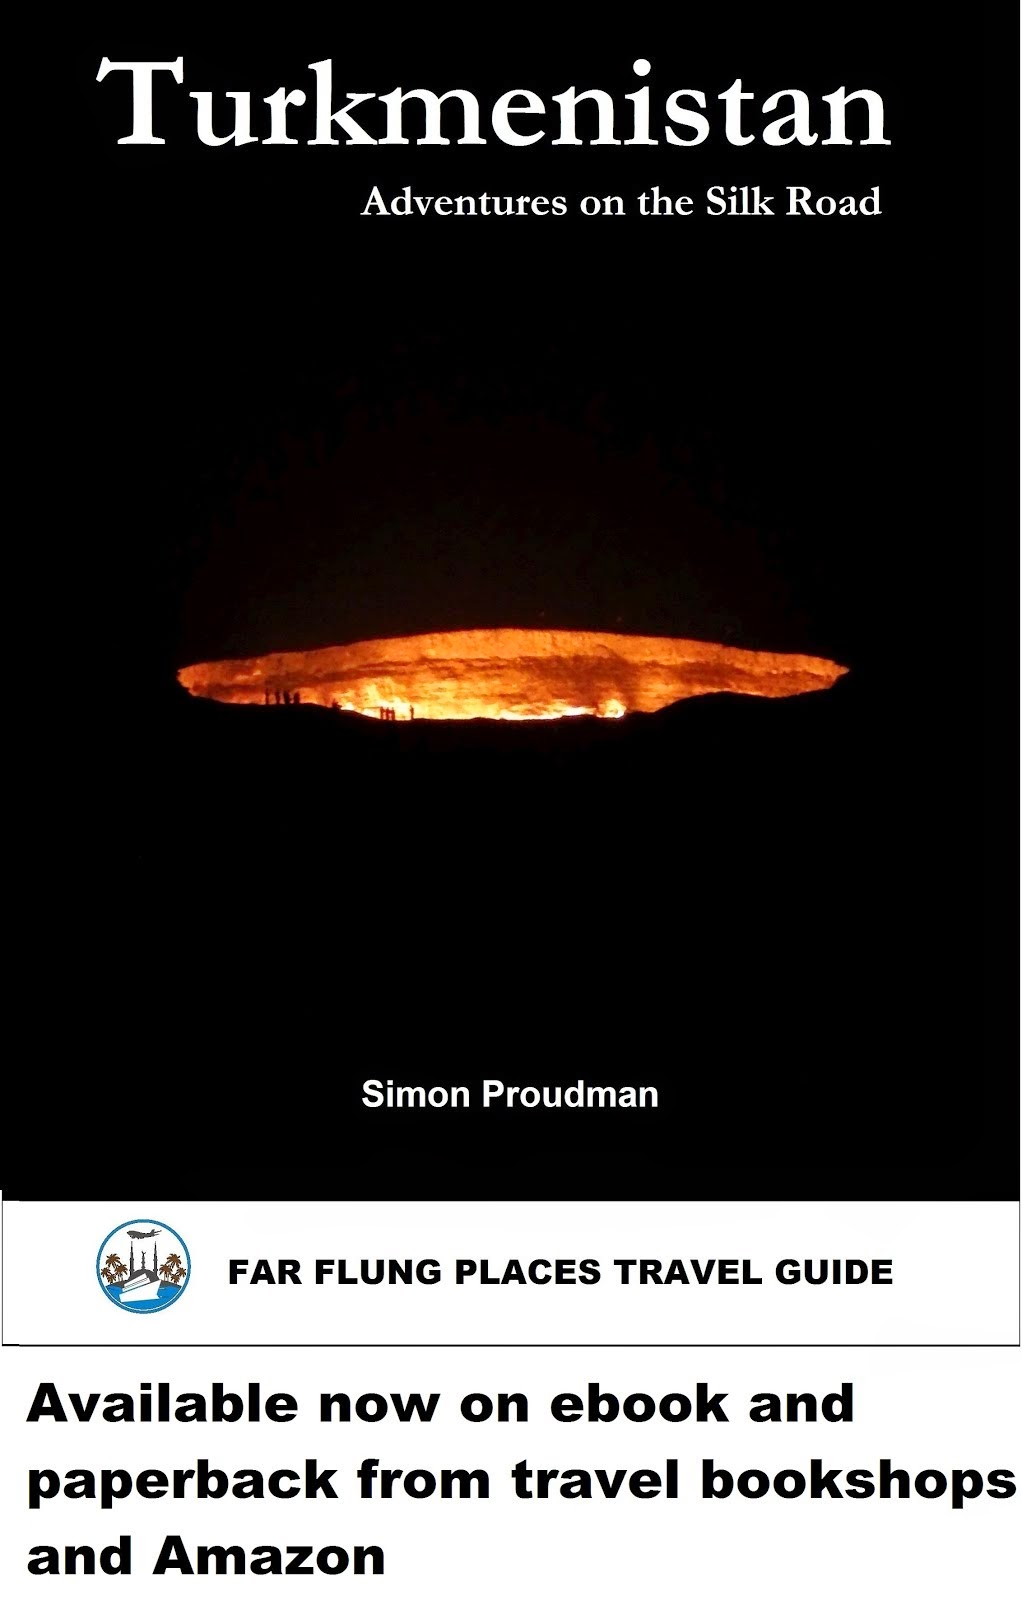 New Guide to Turkmenistan Out Now!